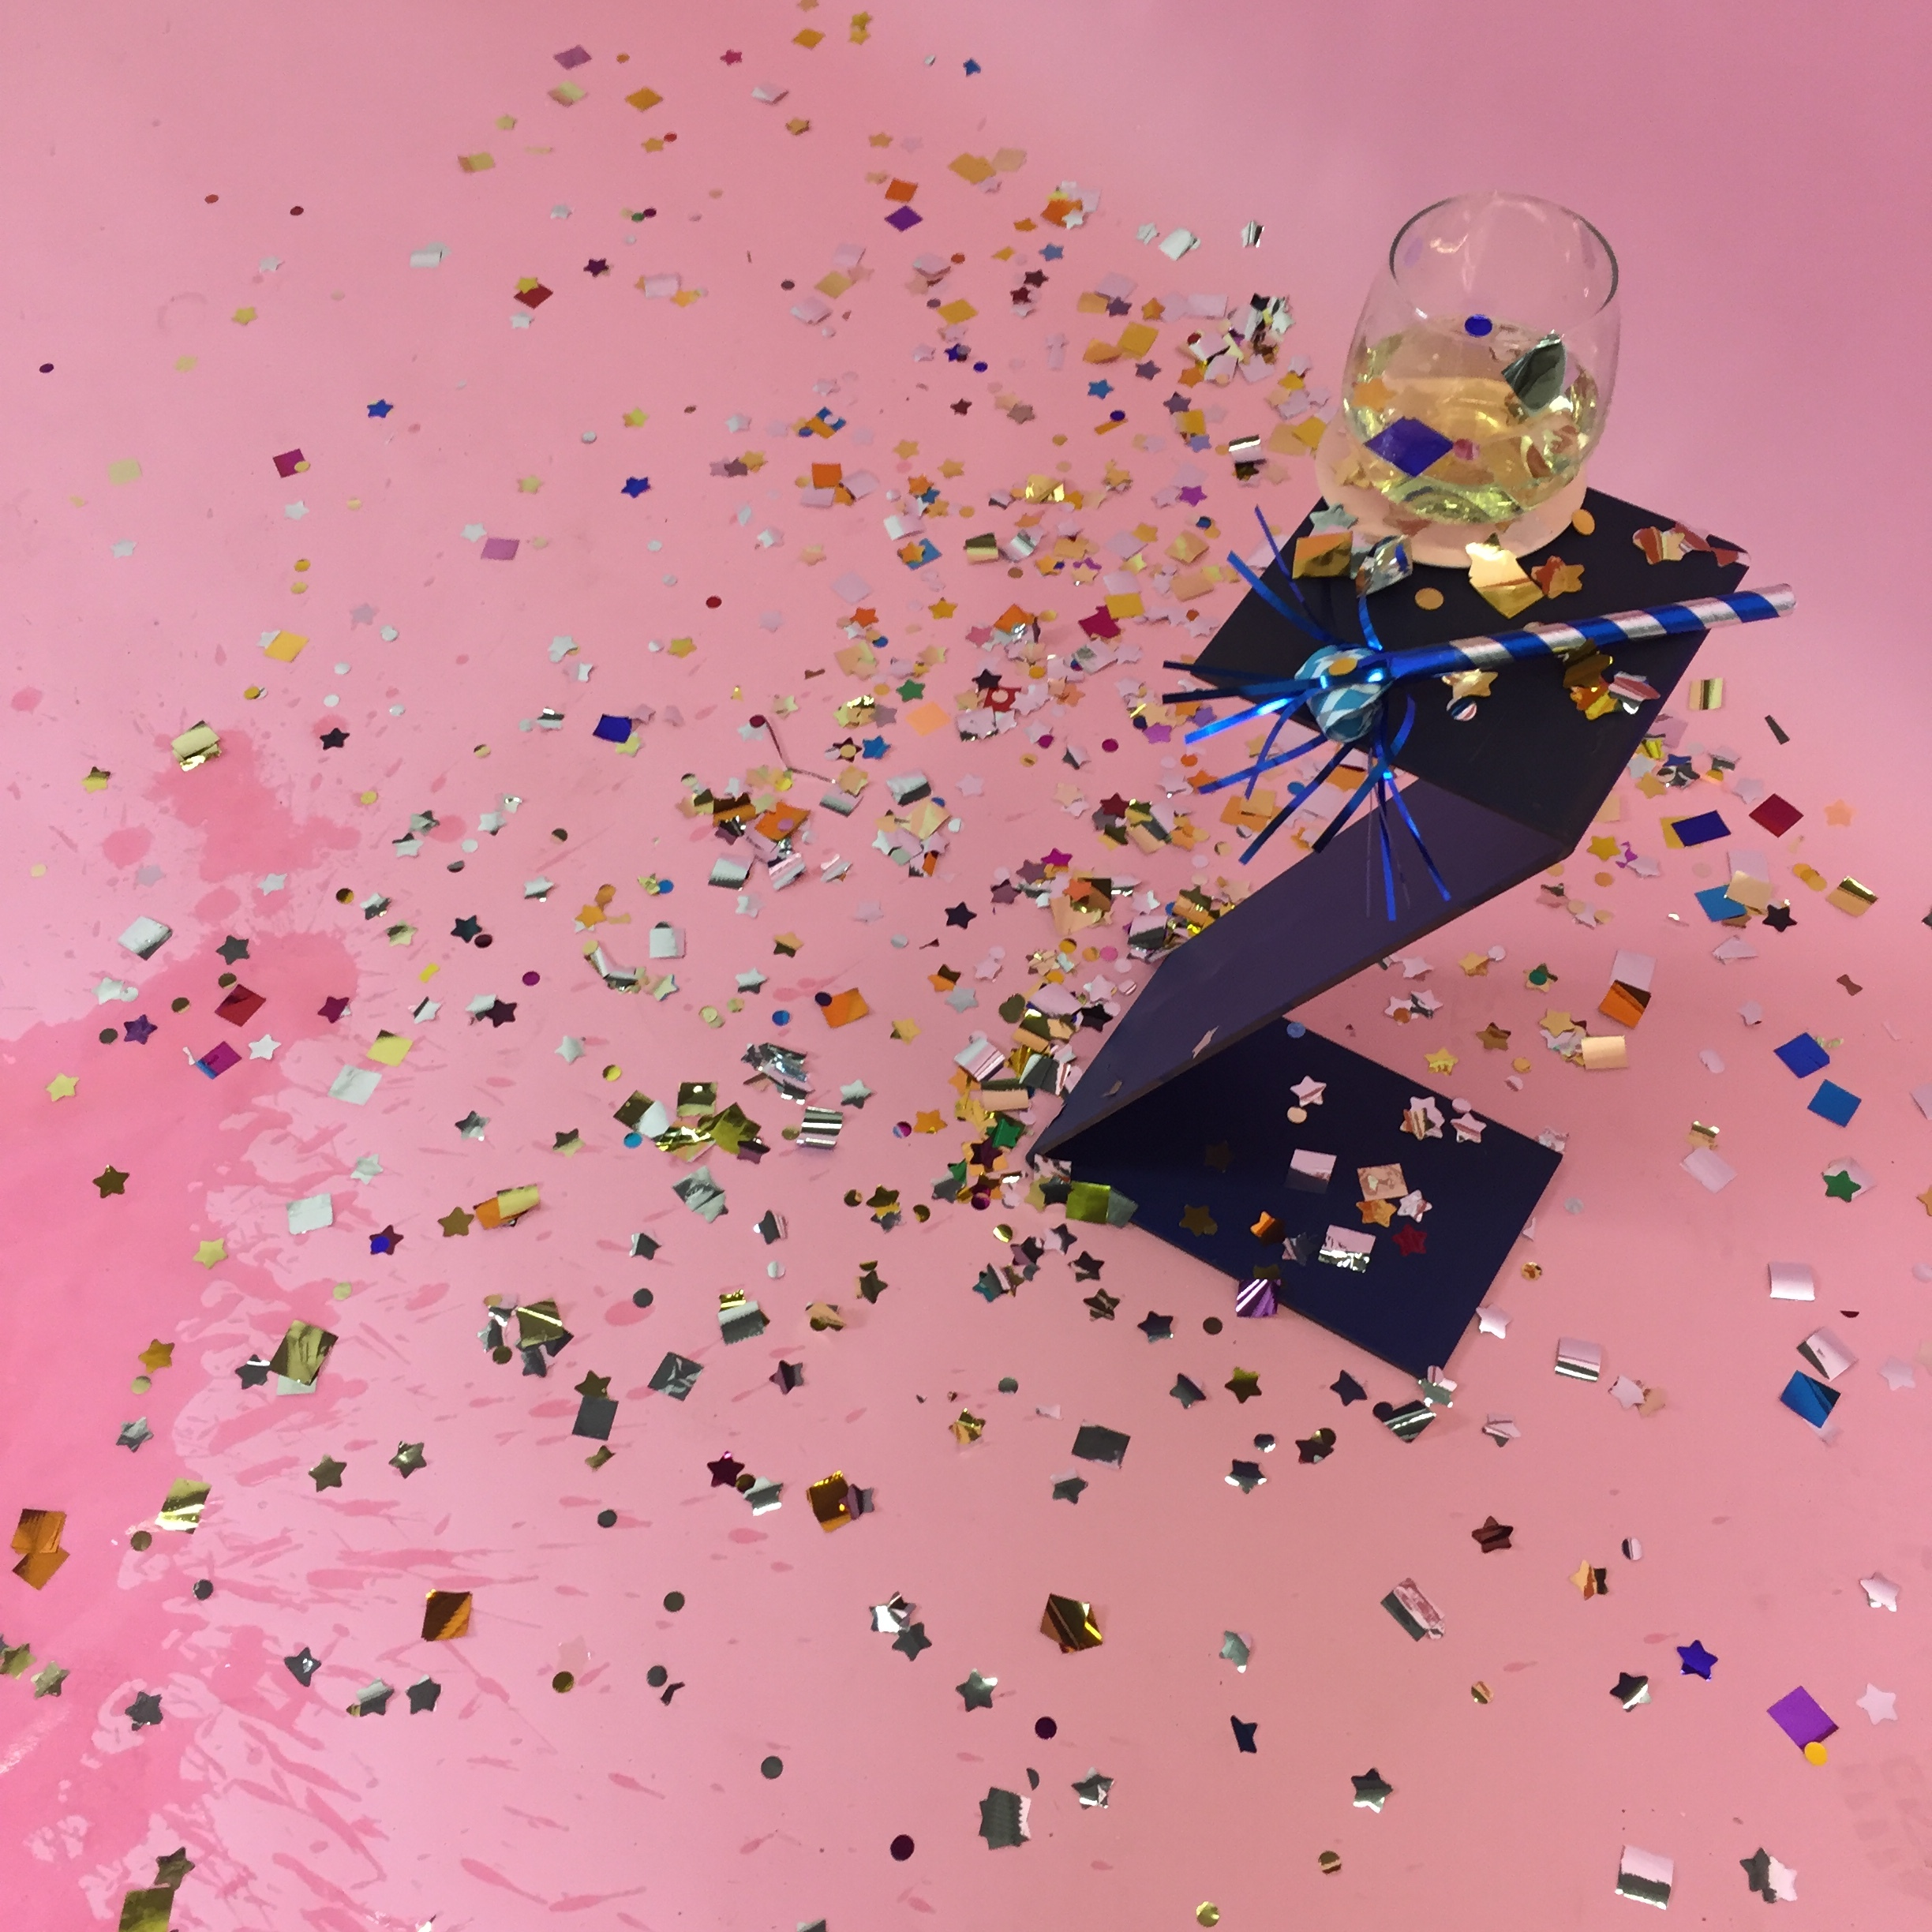 party time confetti image.JPG